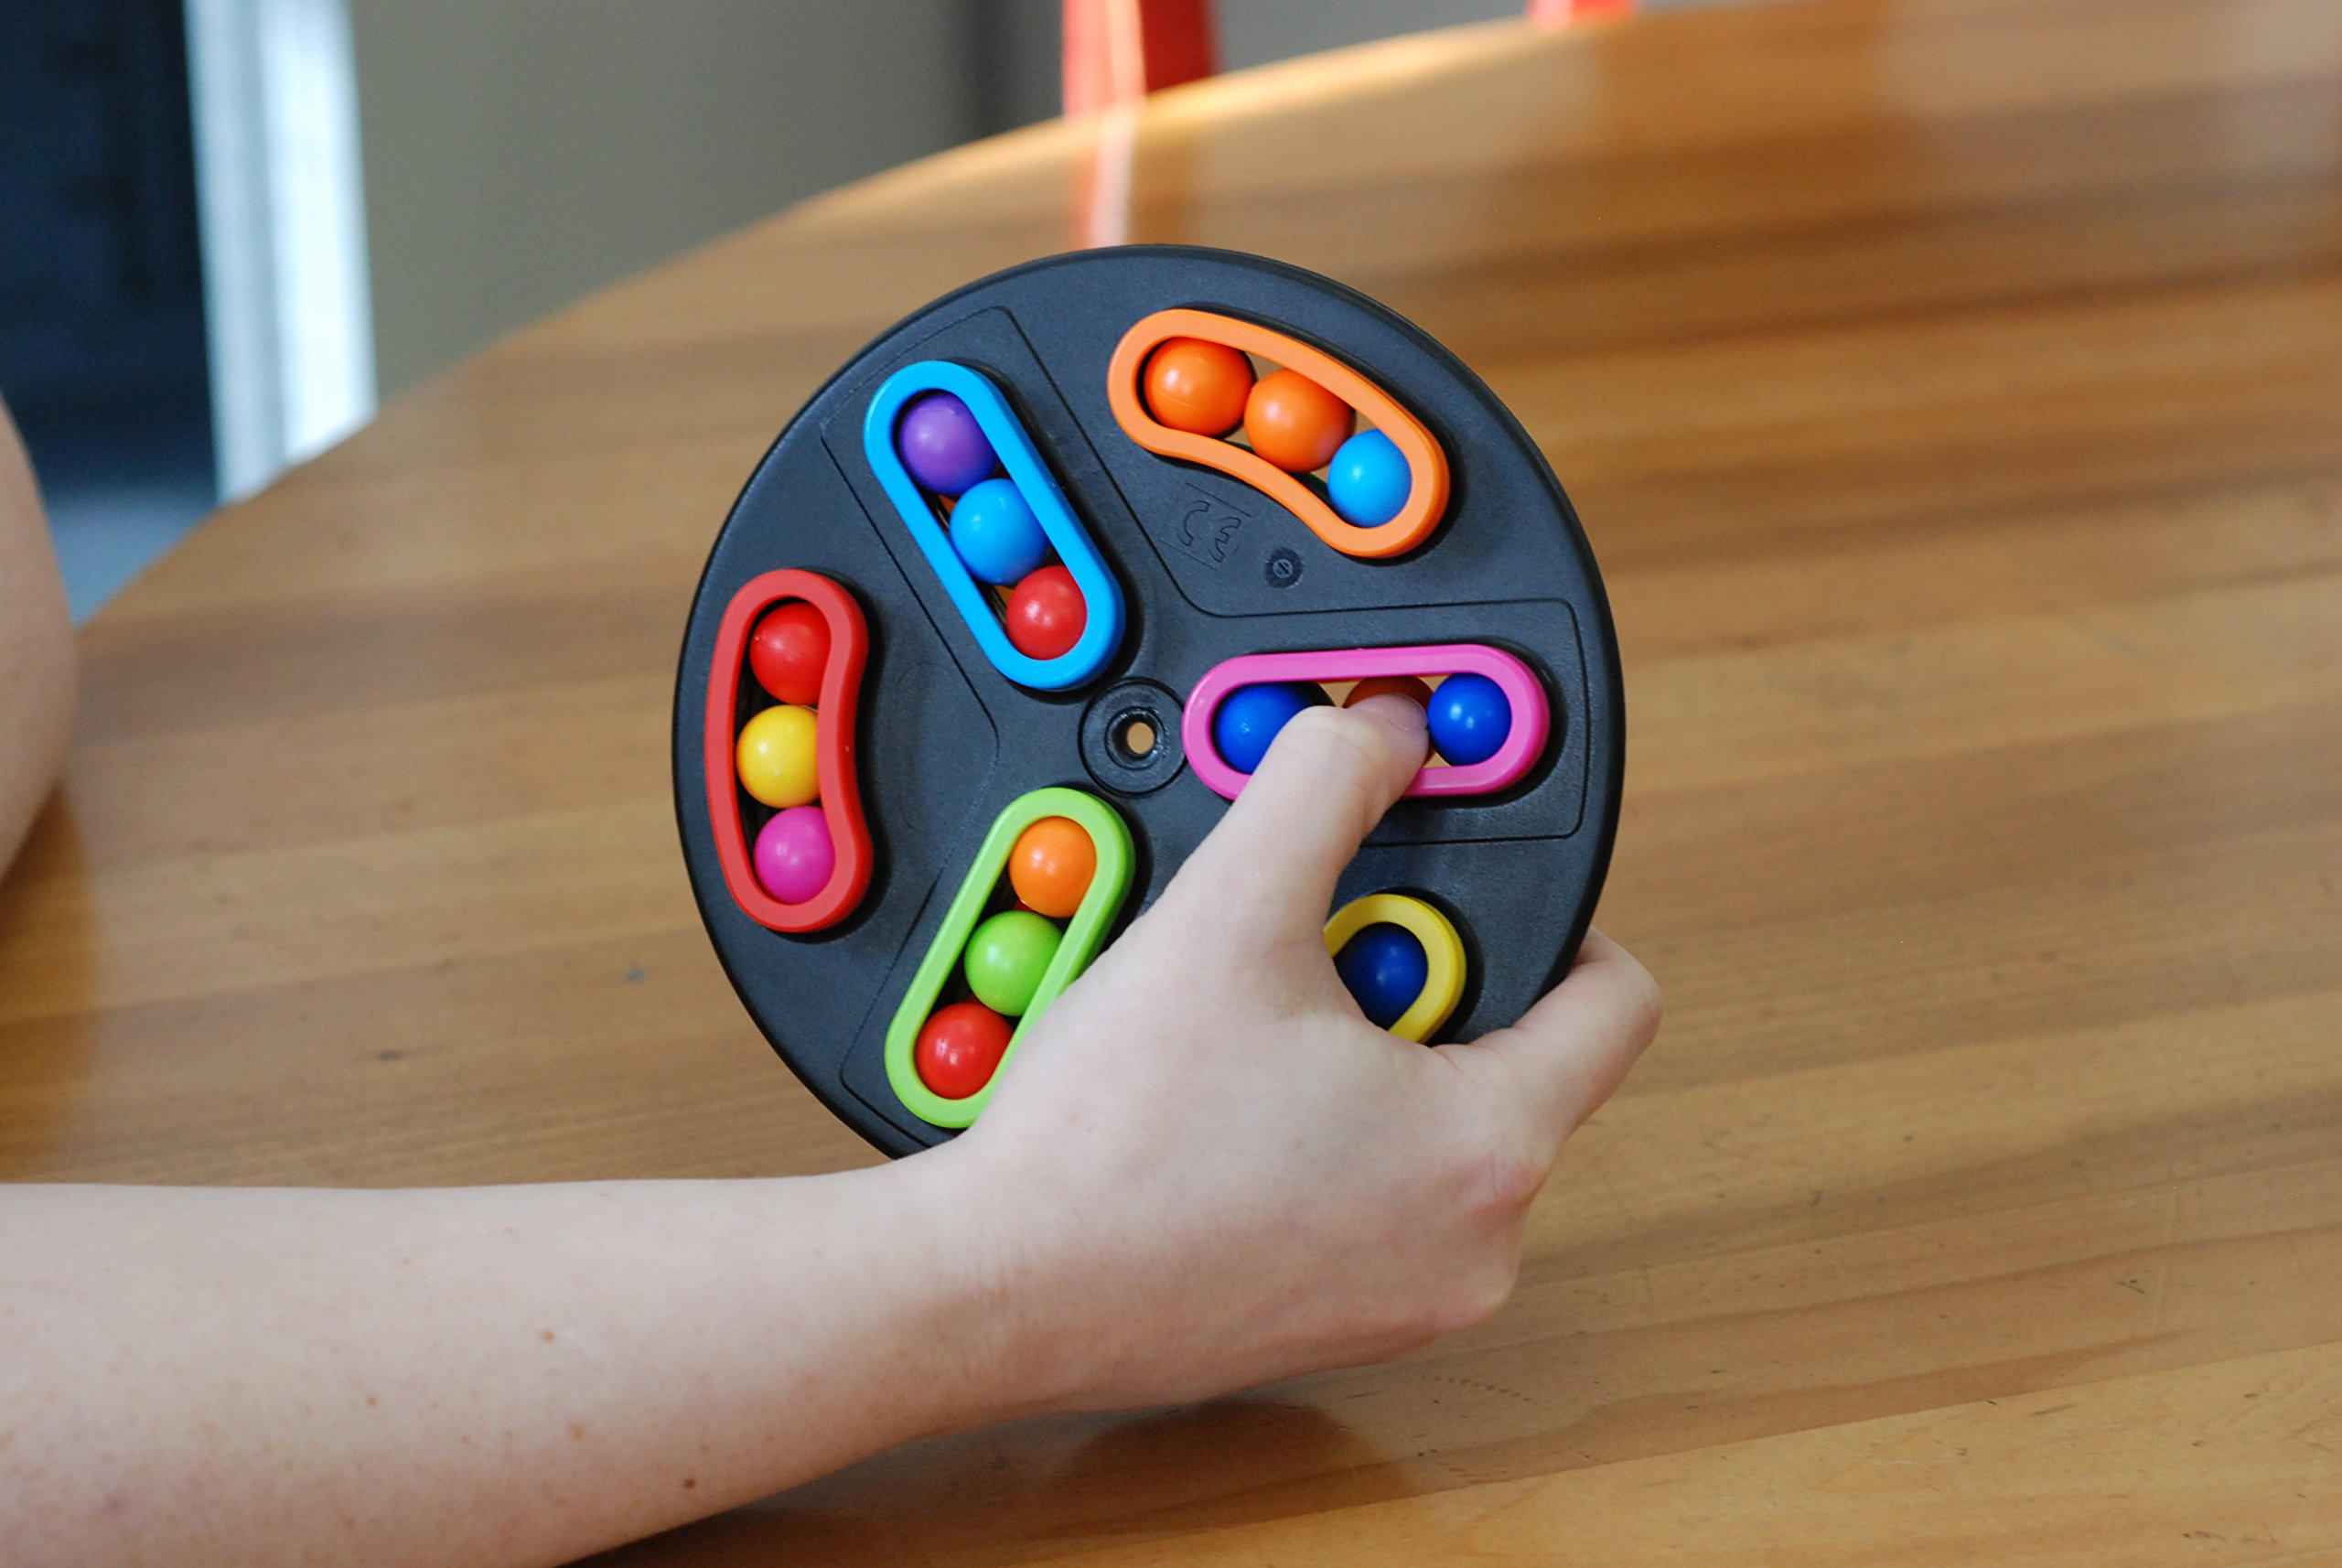 Back-Spin Handheld Puzzle Game